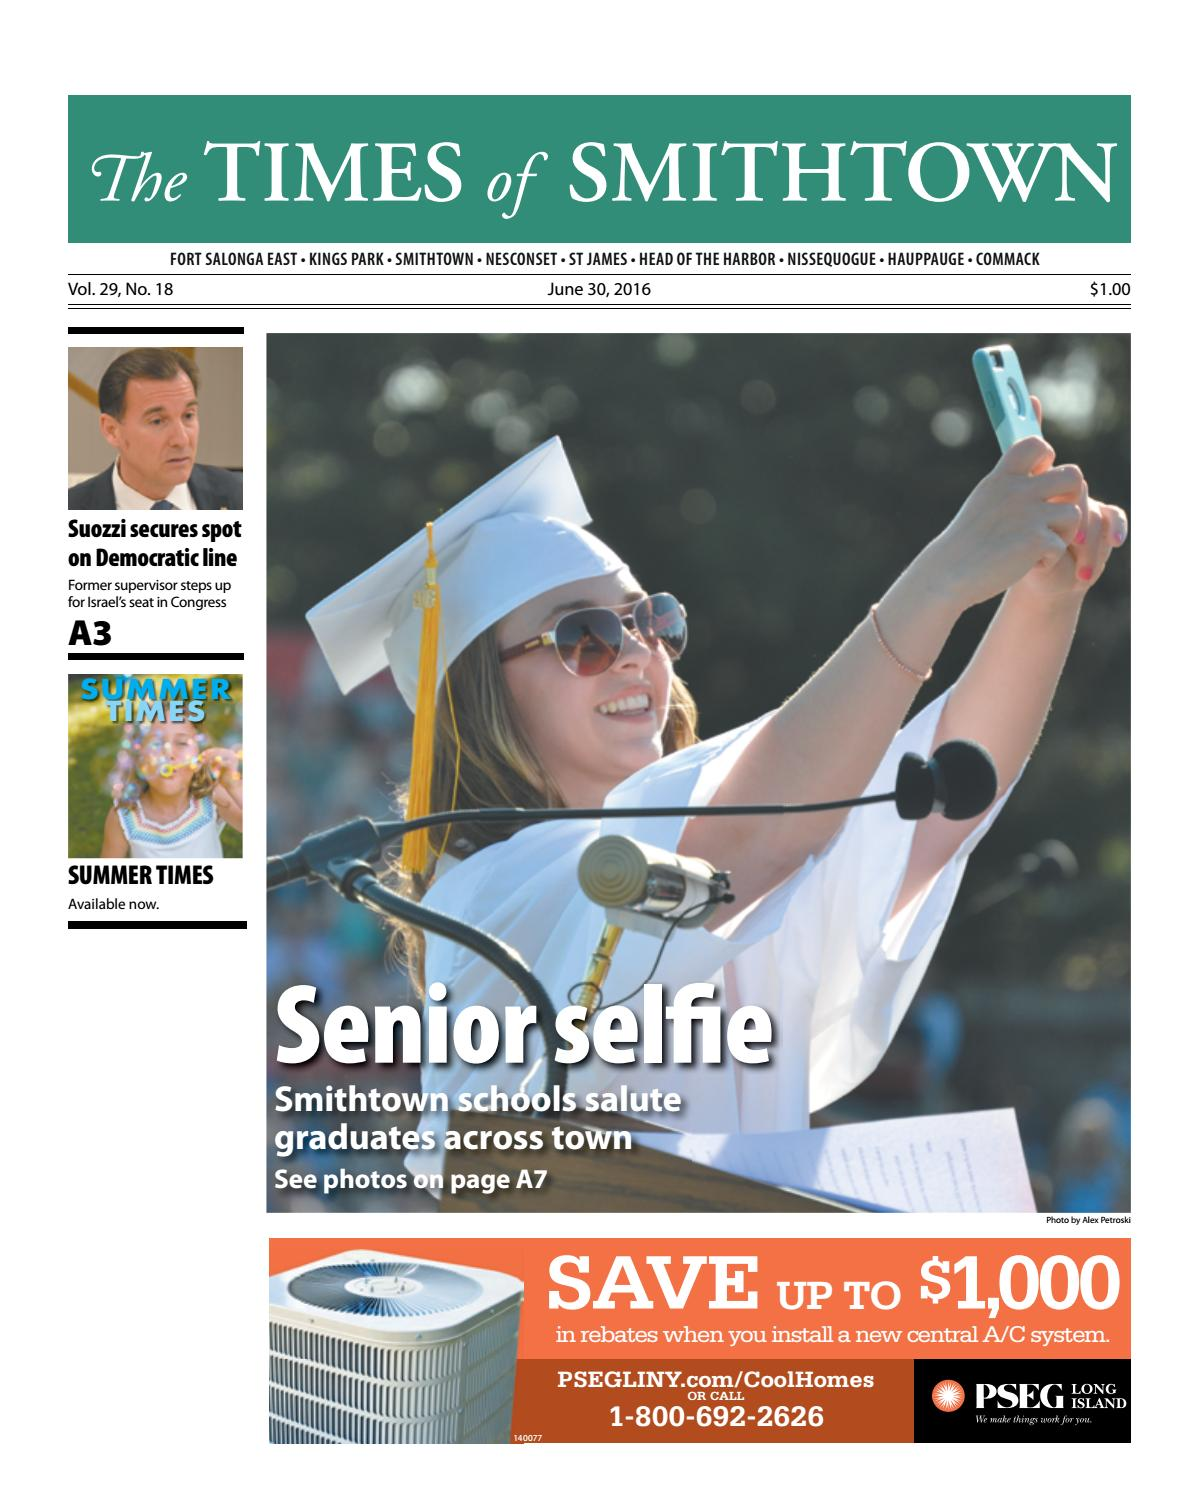 The times of smithtown june 30 2016 by tbr news media issuu negle Images